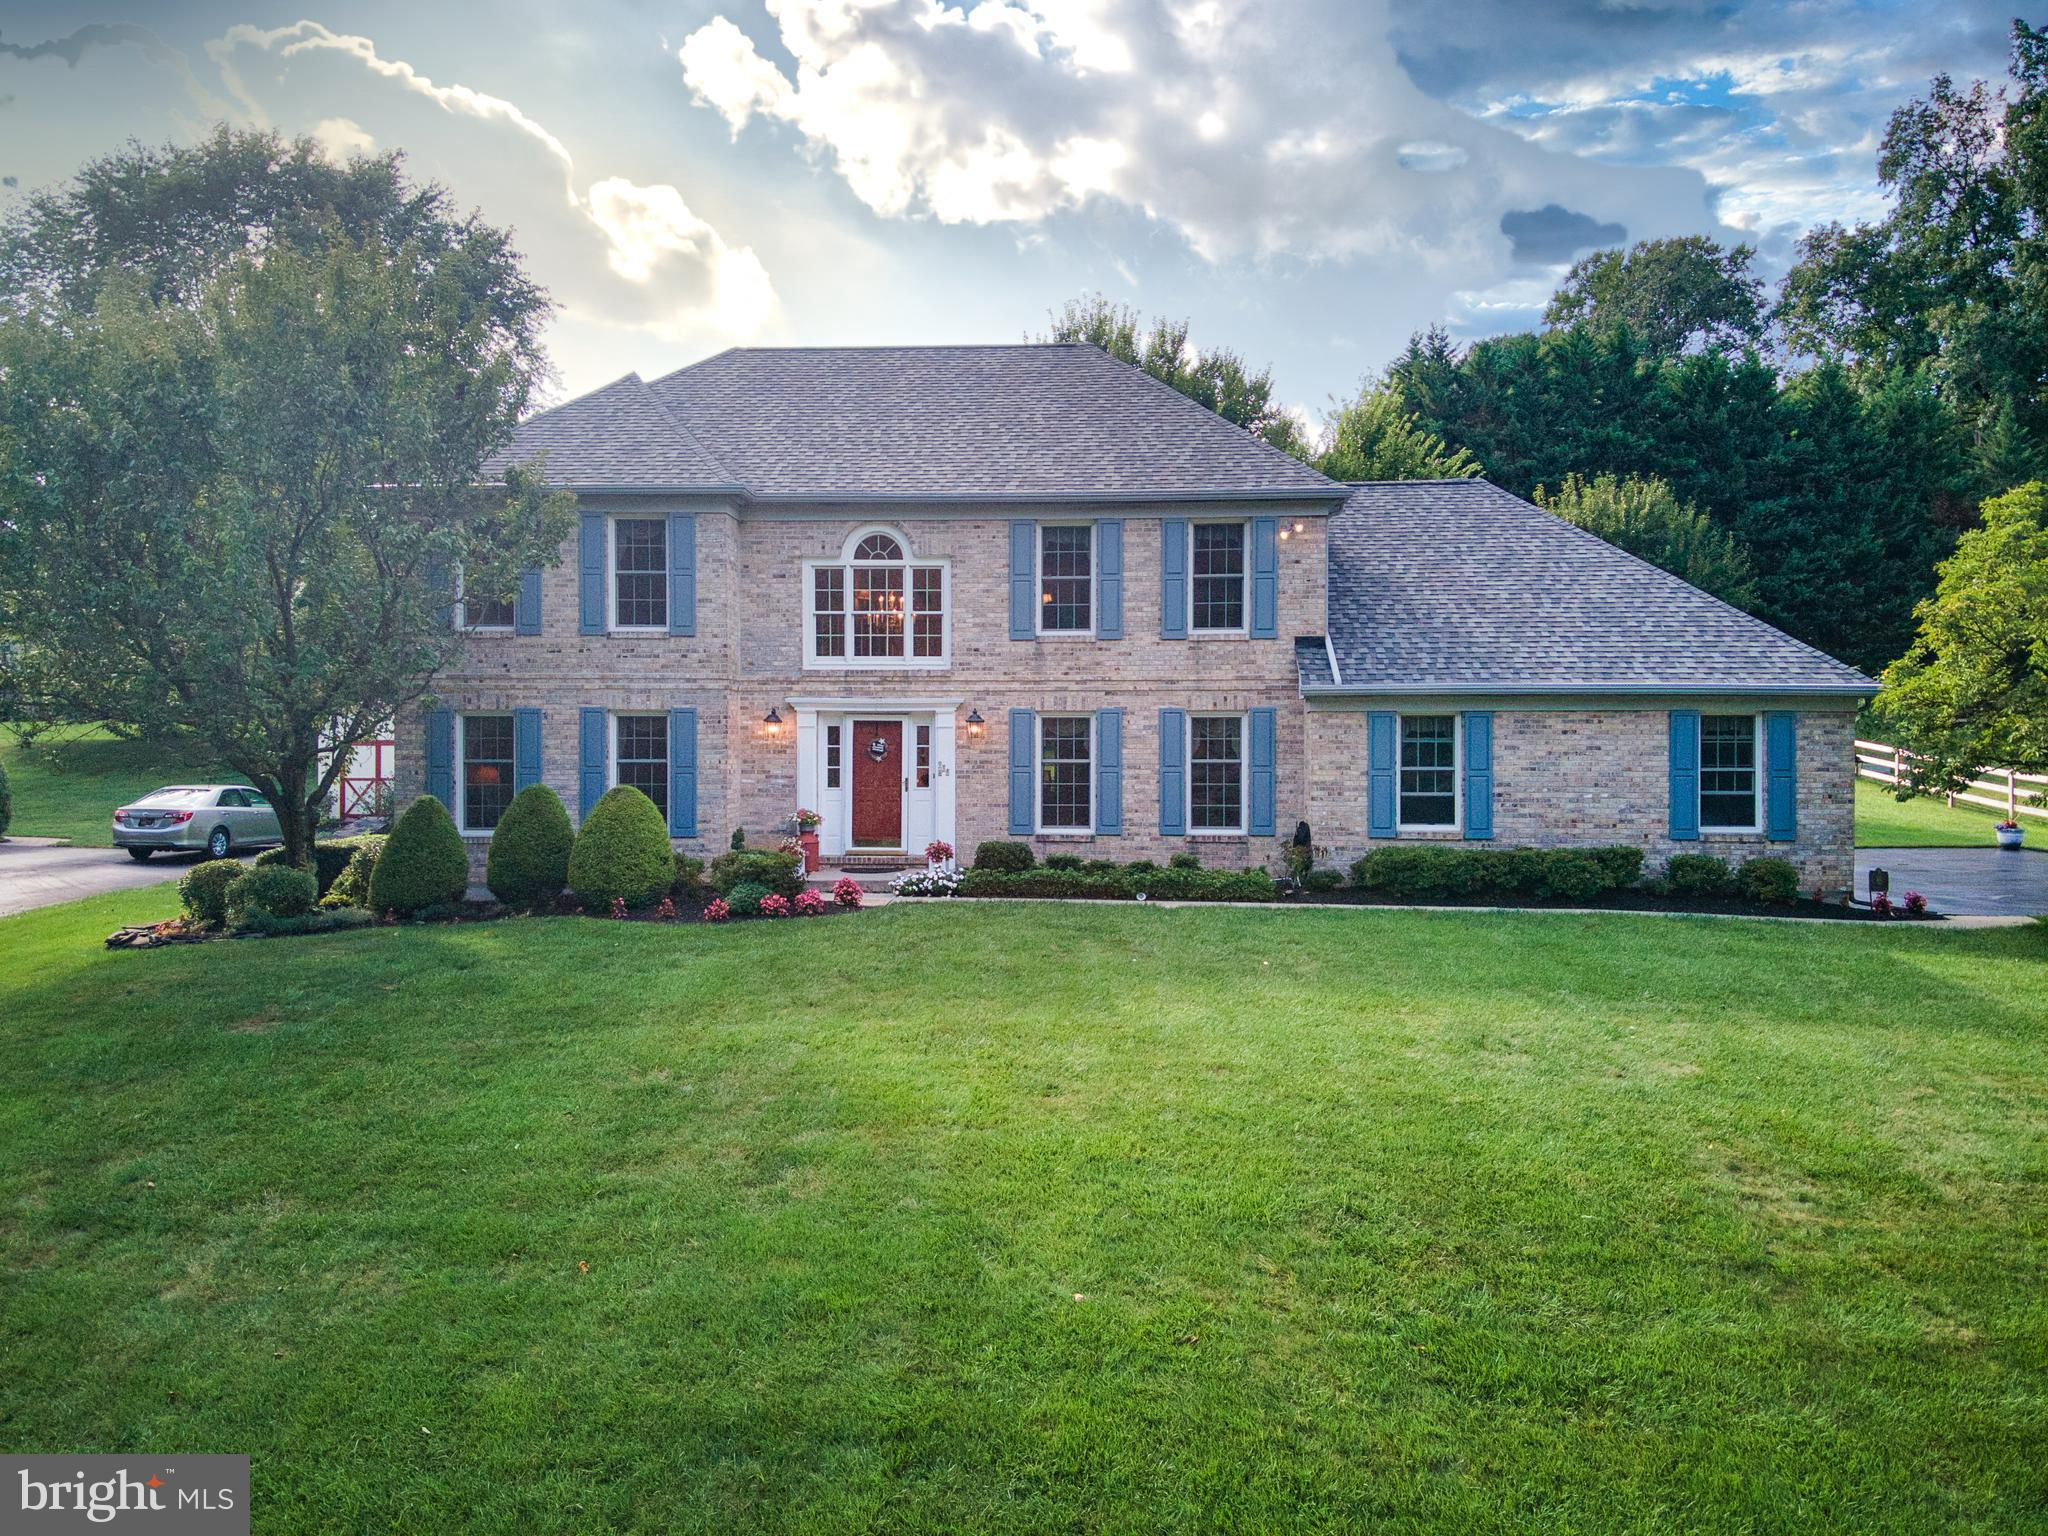 Impeccably maintained, custom built Colonial with spectacular upgrades sits on over half an acre in the hills of Hockessin! On an enviable cul-de-sac surrounded by beautiful landscaping and mature trees, this brick front home is sure to impress. Noteworthy features include an expansive open concept floor plan, a spacious sunroom for year-round enjoyment, and an oversized deck with a retractable awning overlooking the lush backyard. From the moment you enter this impressive home, you will delight in the fine finishes and impeccable hardwood floors that seamlessly flow throughout. The sun-filled two story foyer is flanked by a picturesque formal living room and a formal dining room, with elegant wainscotting and plenty of space to entertain. The expansive gourmet kitchen is generously appointed with tailor-made light cherry cabinets, distinctive granite countertops, stainless steel appliances, dual ovens, and an oversized island with a breakfast bar, sure to delight chefs and hosts alike! A custom butler's pantry offers additional storage adjacent to the eat-in dining area with sliders to the back deck. The open floor plan continues to the spacious family room which features a cozy gas fireplace flanked by large, sun-filled windows, perfect for family gatherings every holiday season. French doors open to the stunning 17'x17' sunroom. Walls of windows and four large skylights flood this room with natural light. Offering Italian tile floors, a wet bar for entertaining, and a ceiling fan, this room is prime for your enjoyment and leisure year round. The main level of this stately home also features a service hall that leads to a large tucked-away laundry room, convenient access to an oversized two-car garage with built-in shelves and newly refinished flooring, and a private home office with custom, built-in cabinetry and wainscotting. A powder room for guests completes the first floor. The striking staircase leads upstairs where hardwood floors continue throughout the ha